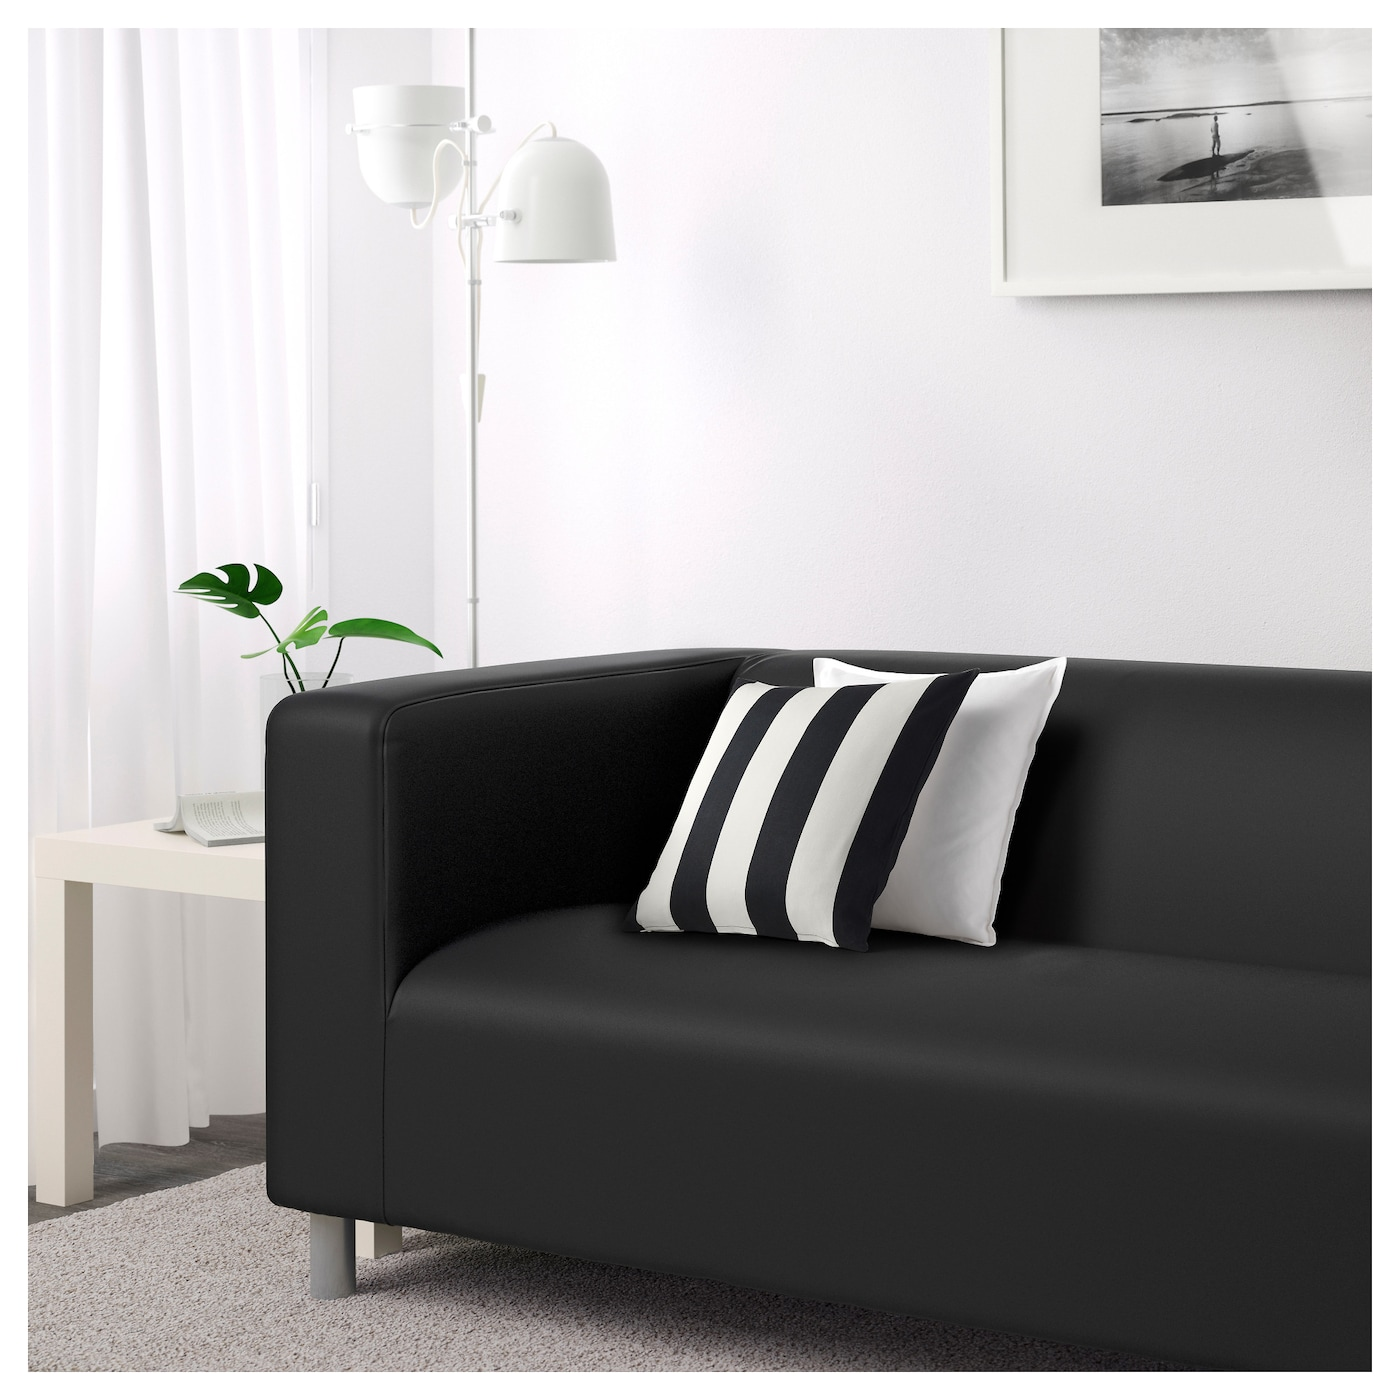 KLIPPAN Two seat sofa Gran¥n black IKEA